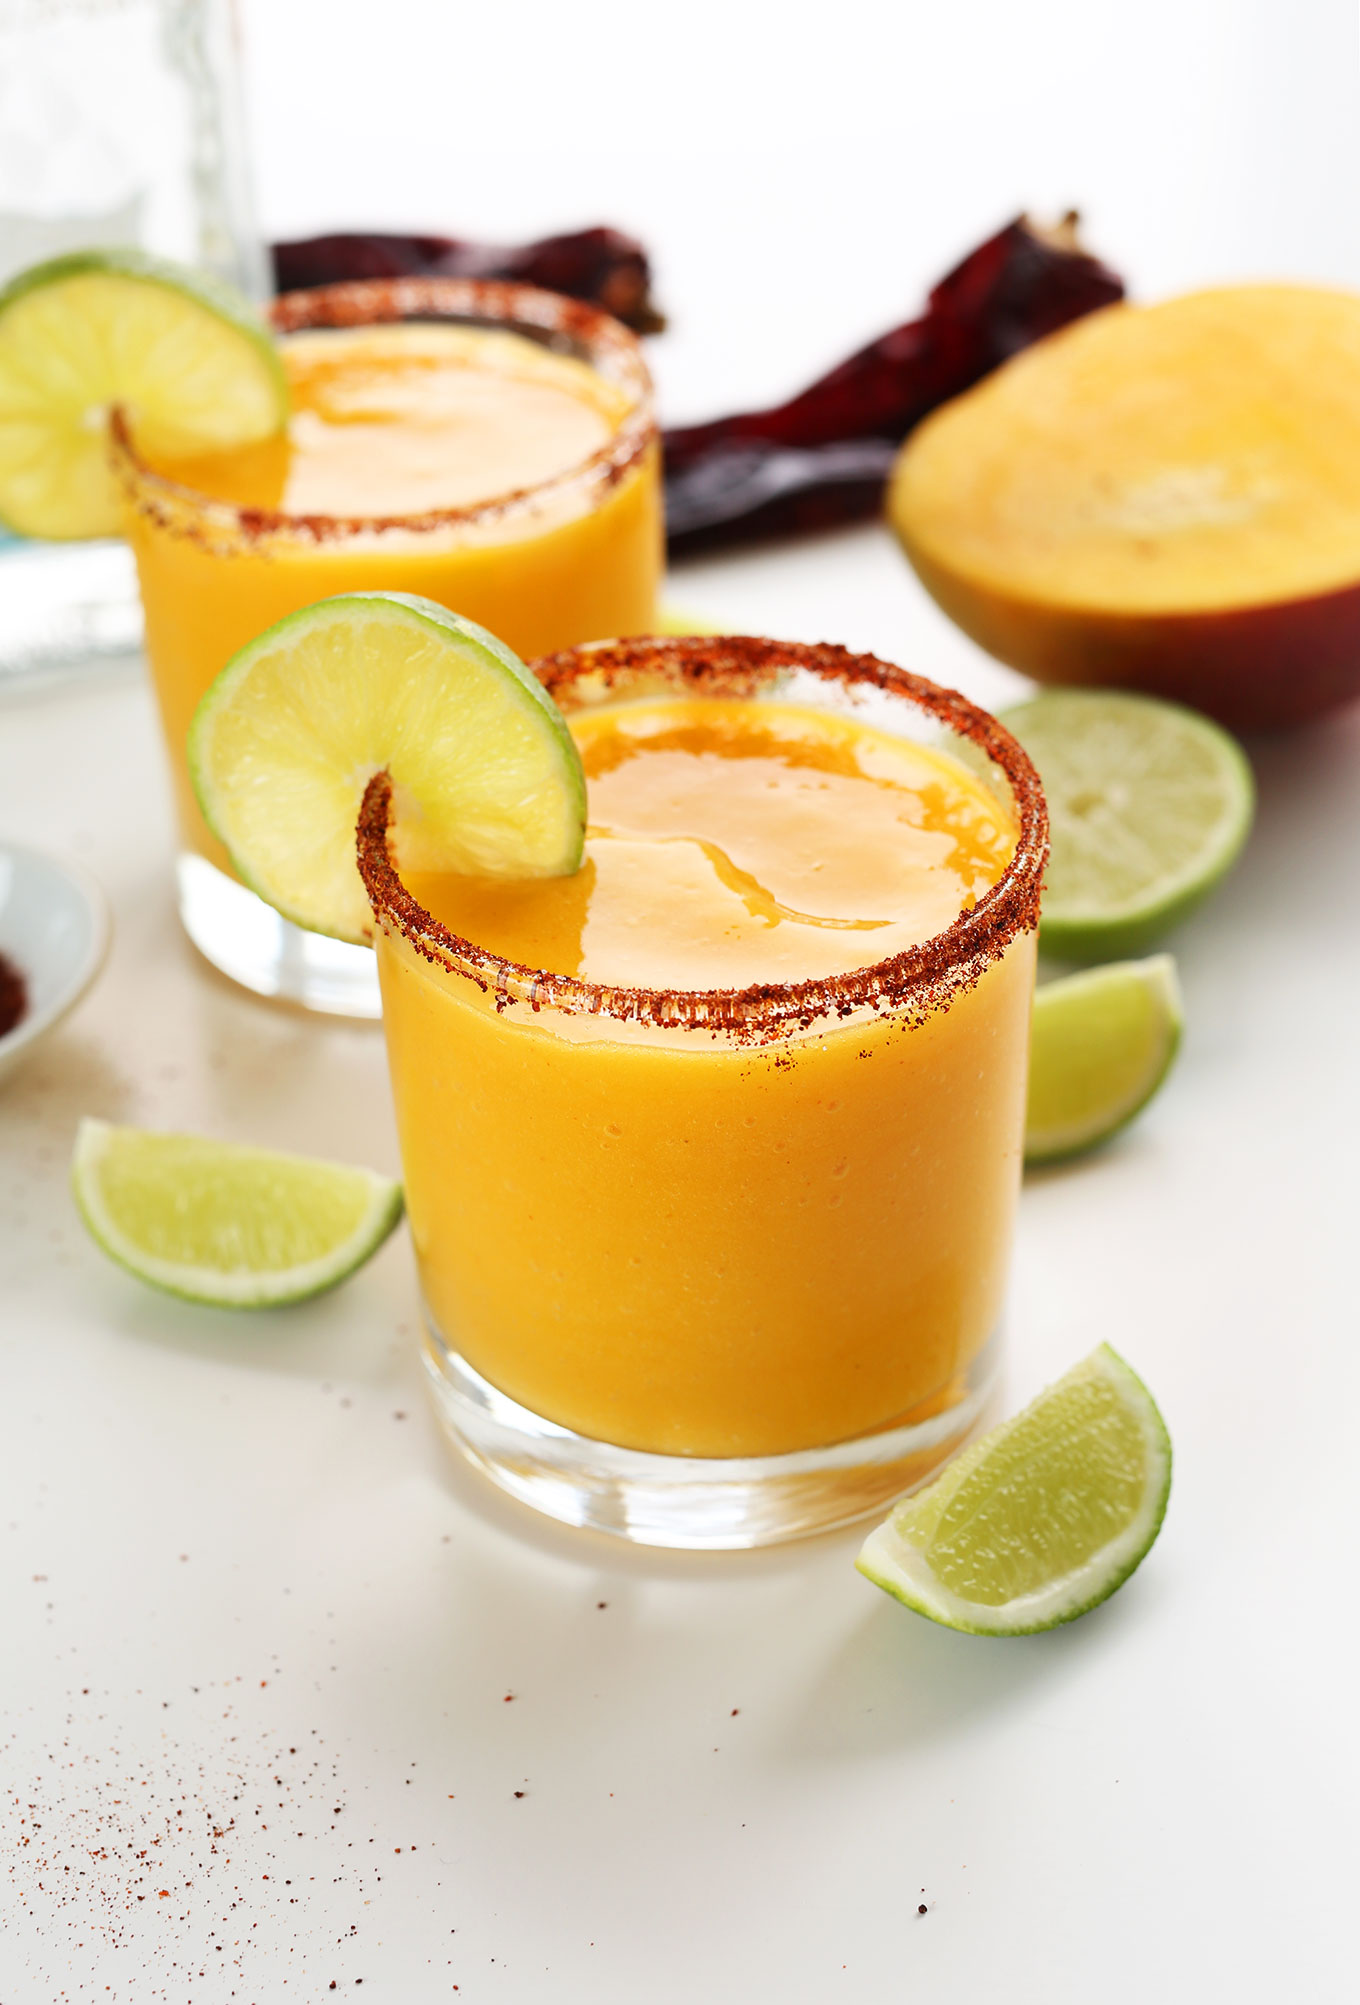 Glasses of our Easy Mango Chili Lime Margaritas recipe for a delicious summer drink